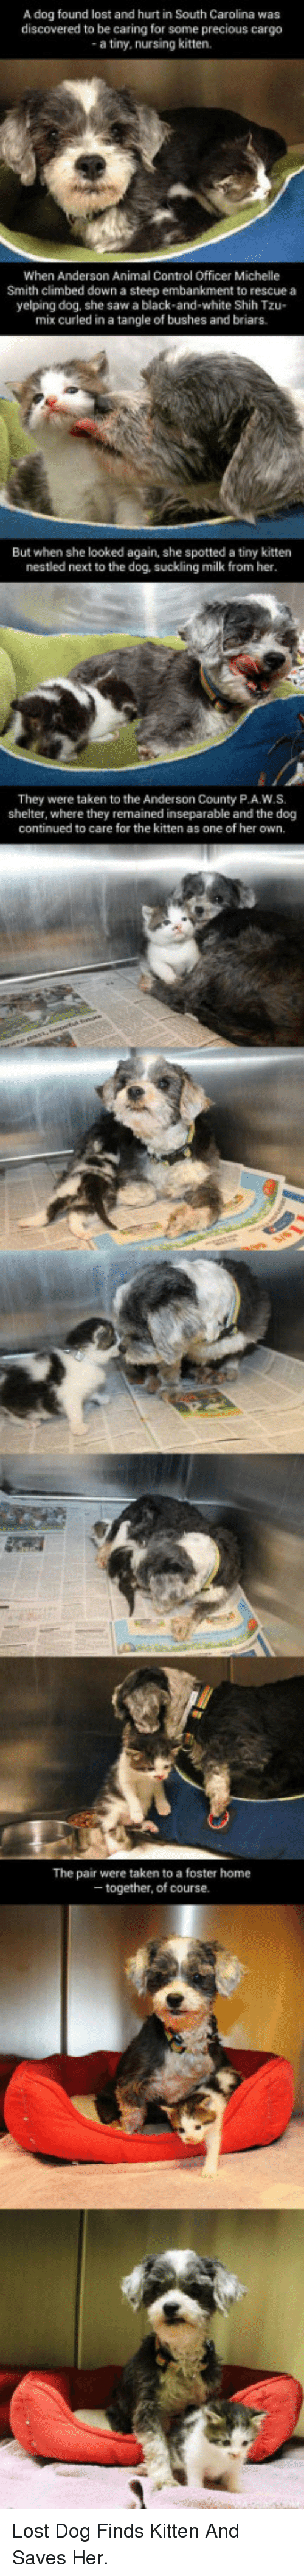 Precious, Saw, and Taken: A dog found lost and hurt in South Carolina was  discovered to be caring for some precious cargo  a tiny, nursing kitten.  When Anderson Animal Control Officer Michelle  Smith climbed down a steep embankment to rescue a  yelping dog, she saw a black-and-white Shih Tzu-  mix curled in a tangle of bushes and briars  But when she looked again, she spotted a tiny kitten  nestled next to the dog, suckling milk from her  They were taken to the Anderson County P.A.W.S.  shelter, where they remained  inseparable and the dog  continued to care for the kitten as one of her own.  The pair were taken to a foster home  - together, of course. <p>Lost Dog Finds Kitten And Saves Her.</p>